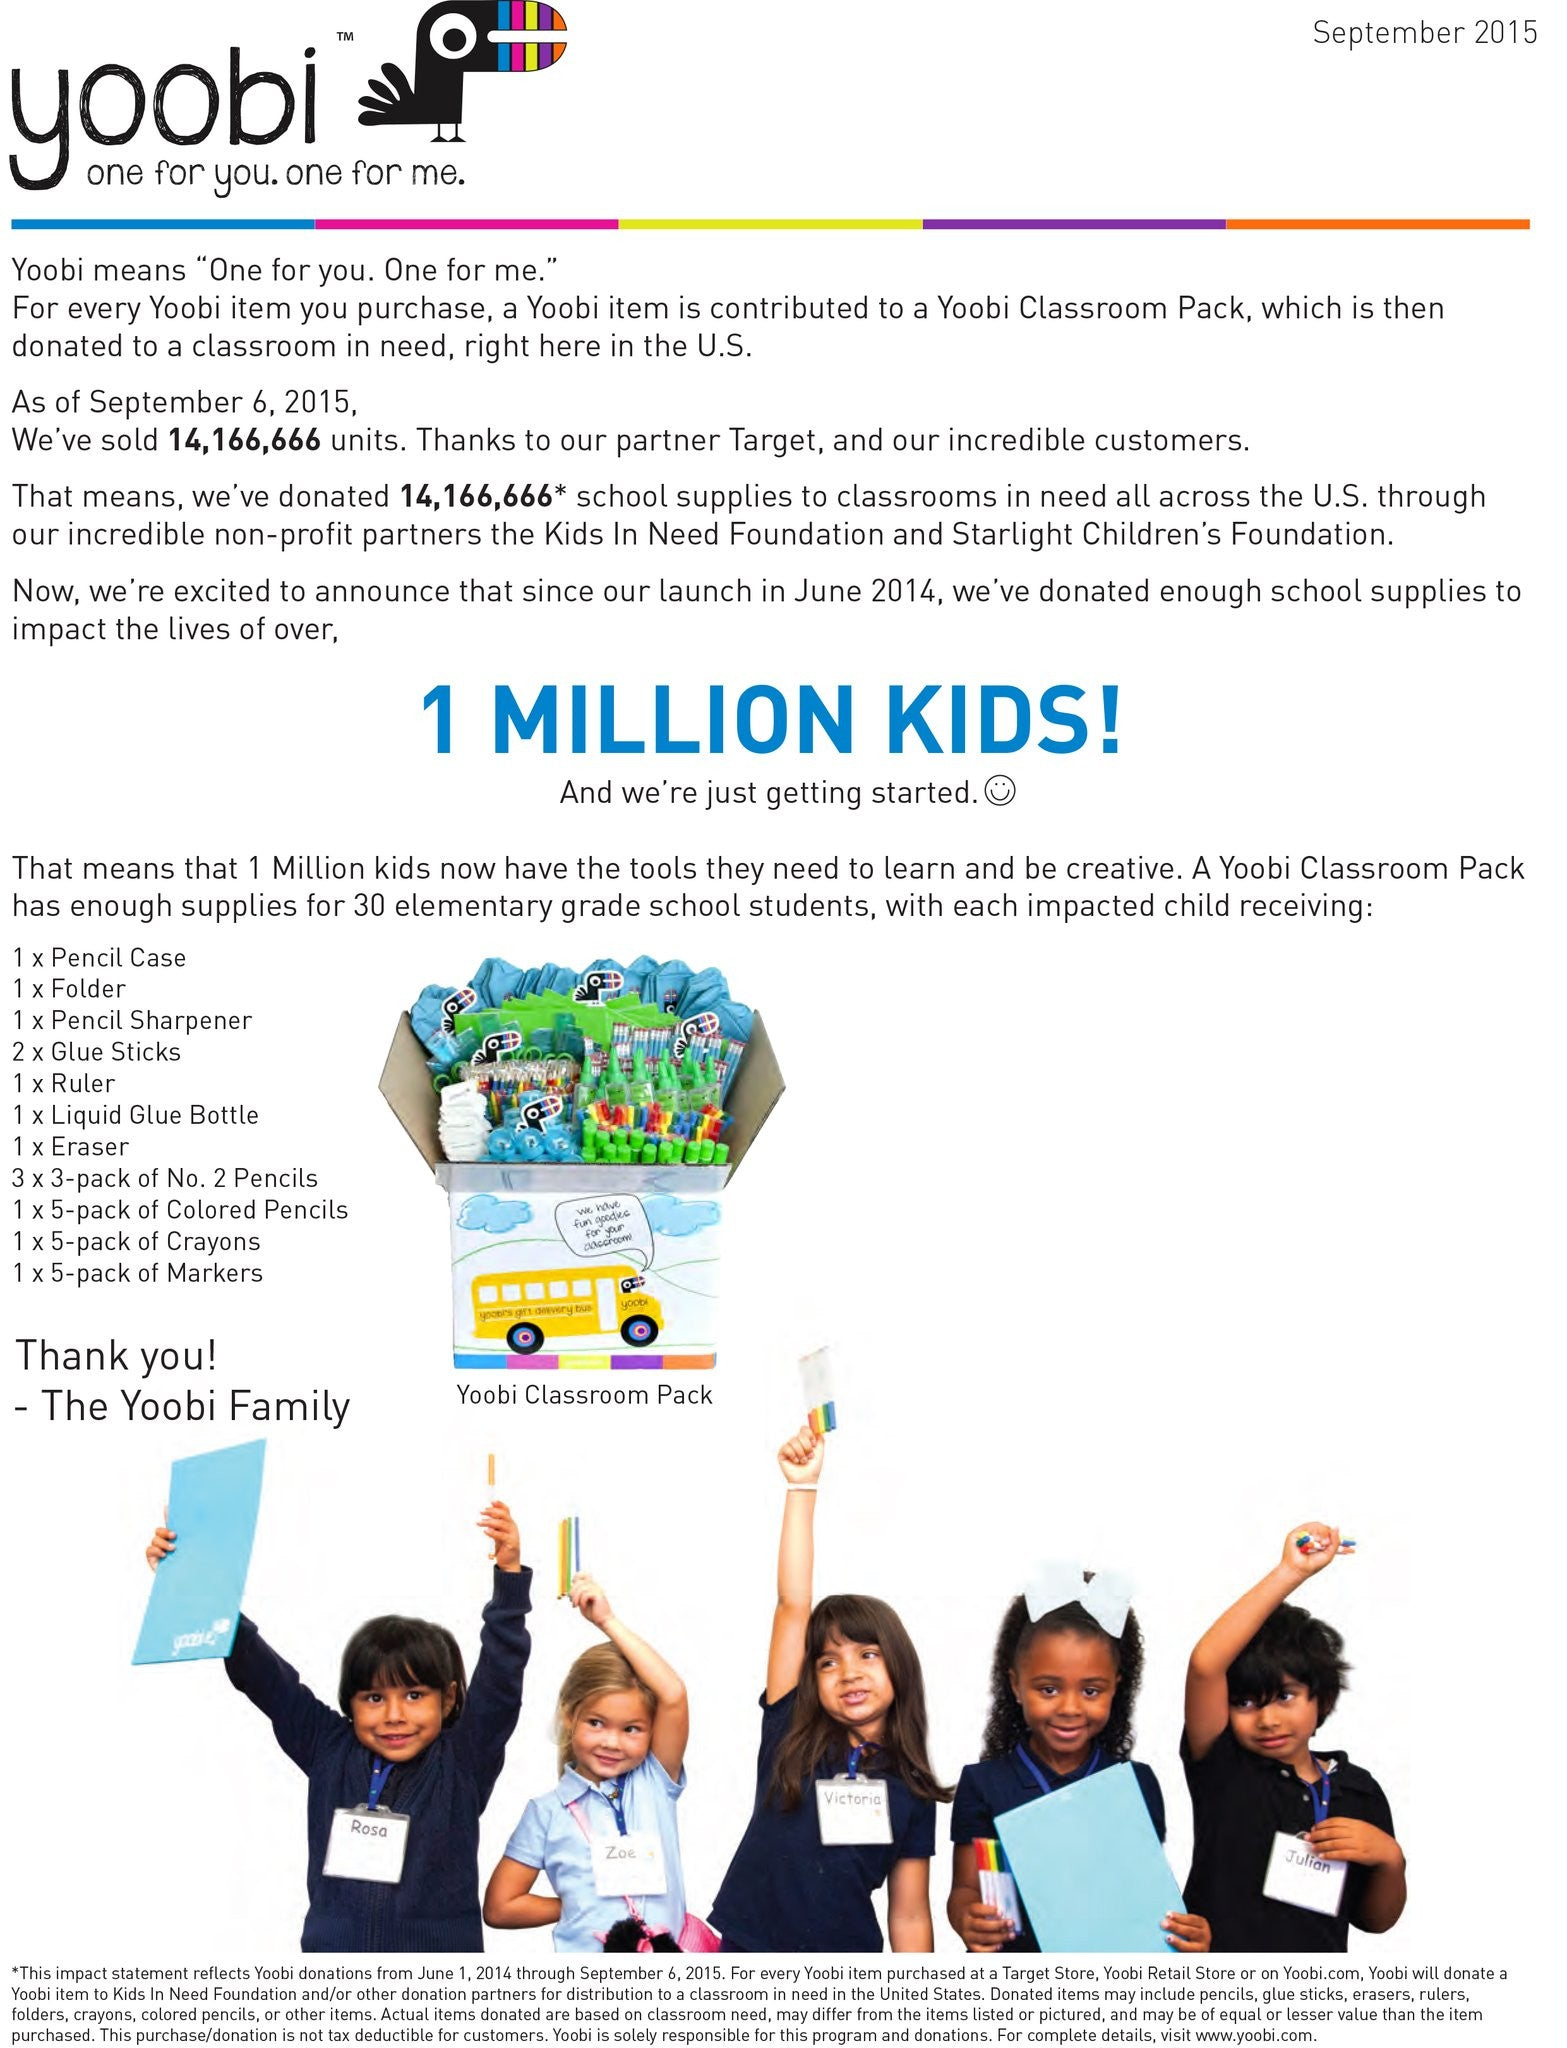 Yoobi Impacts The Lives of 1 Million Kids